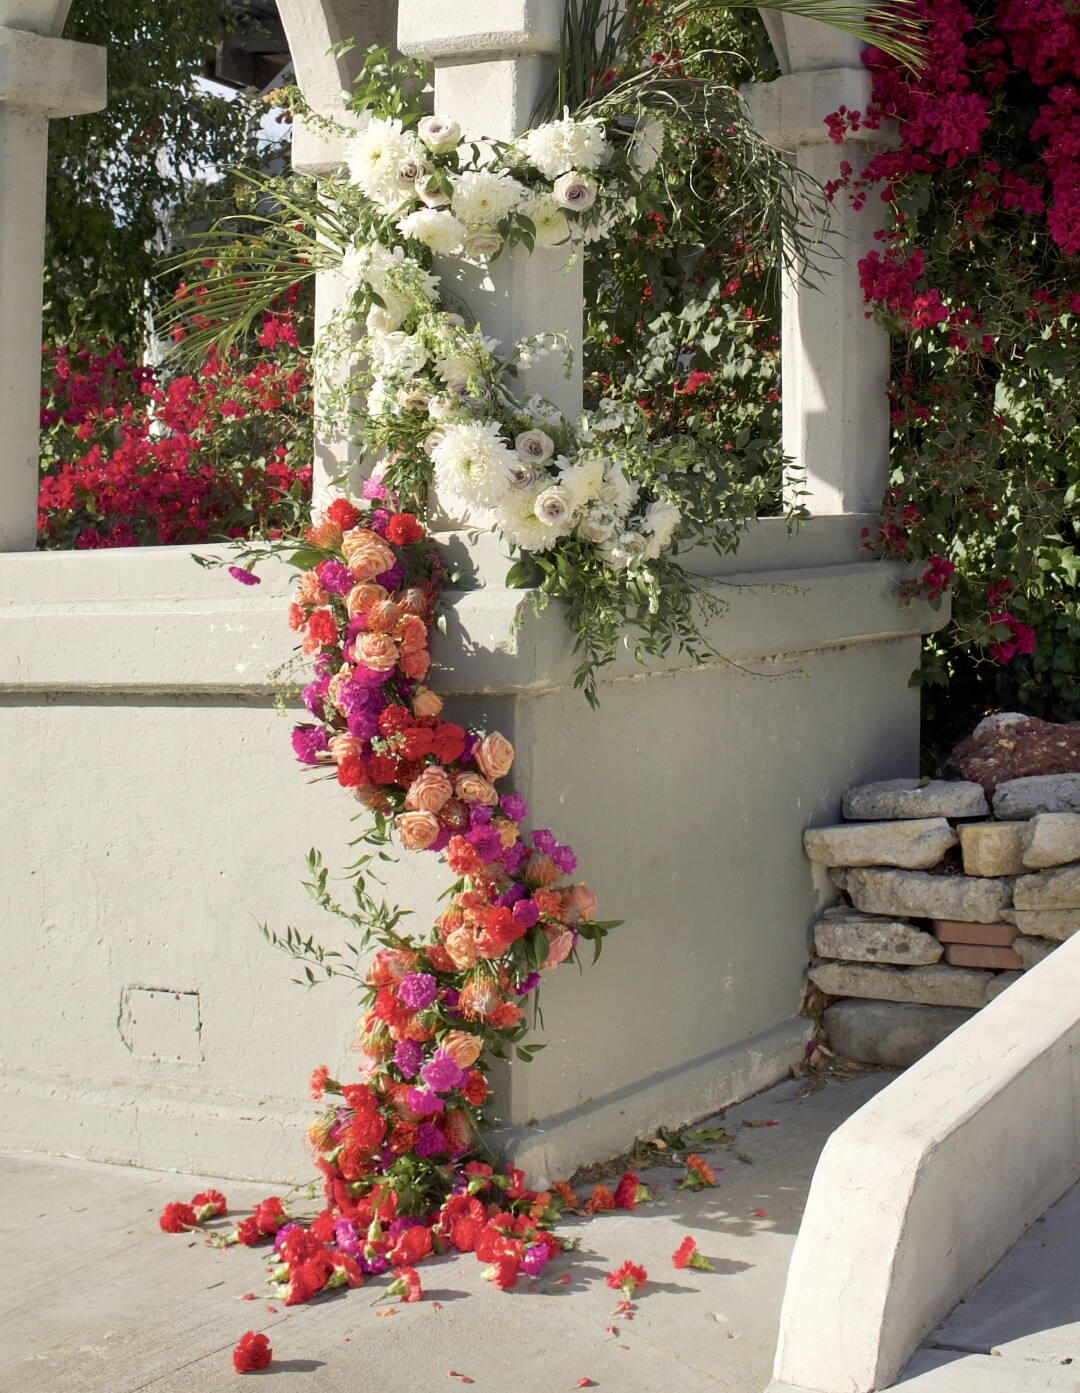 Photograph of a floral installation on the historic Shakespeare Bridge by Bia Yapp.